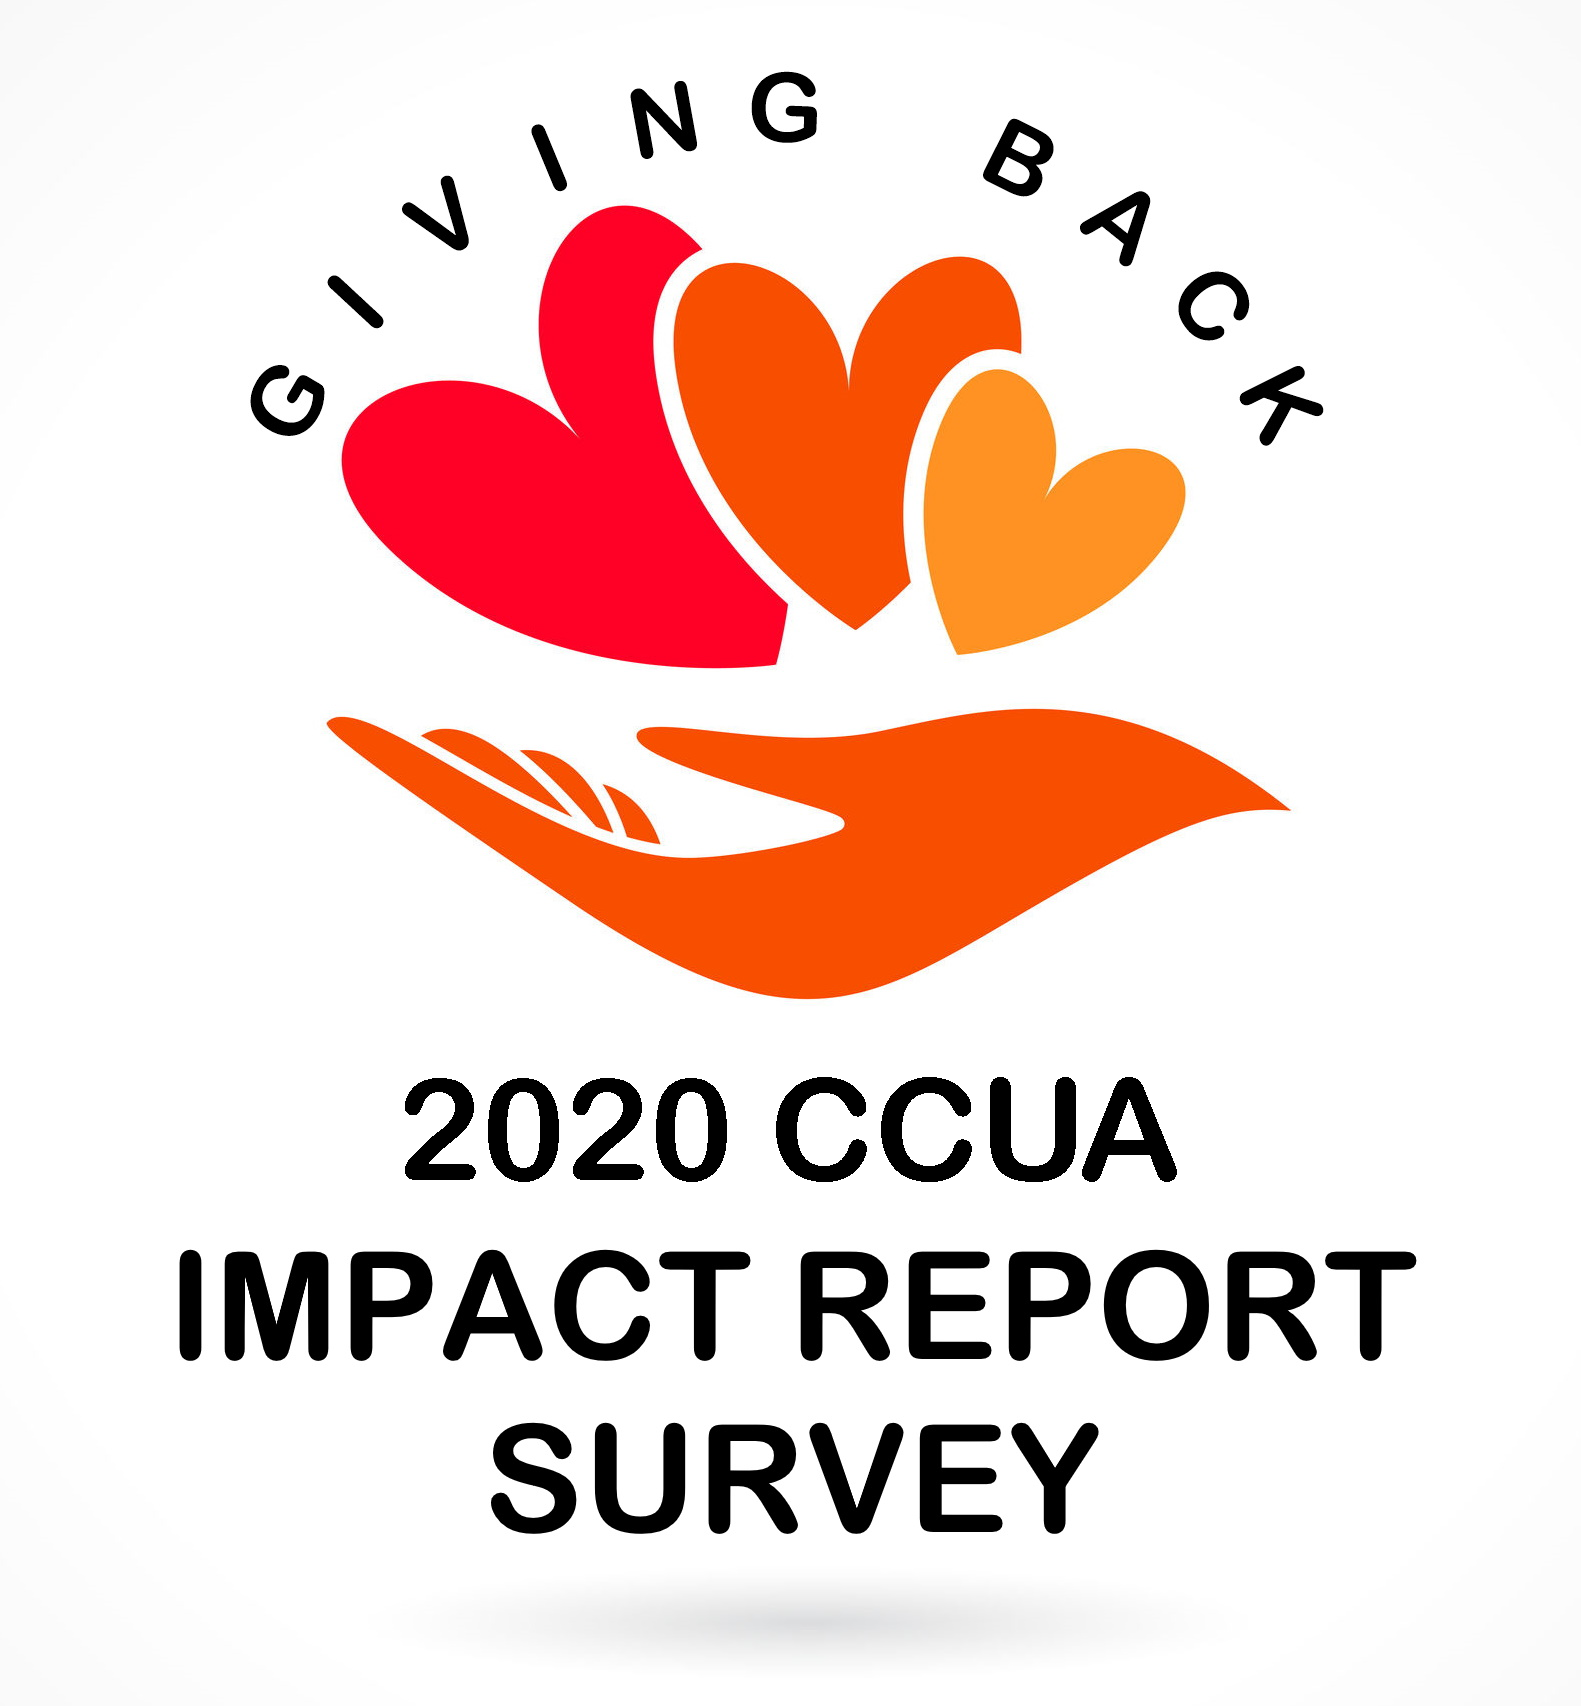 Impact Report Survey